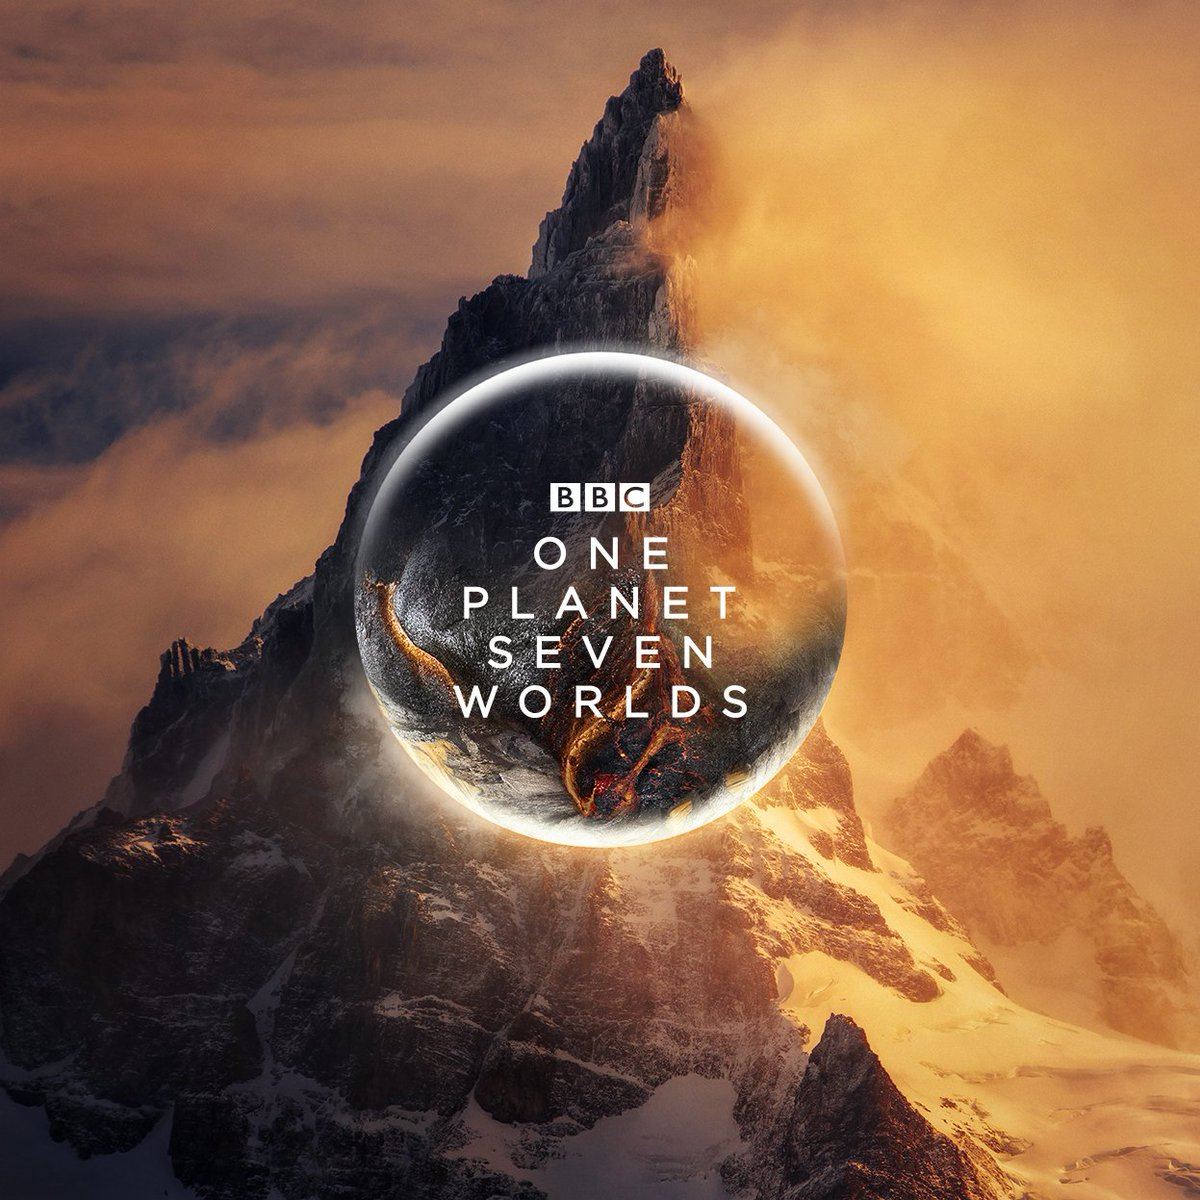 One Planet, Seven Worlds